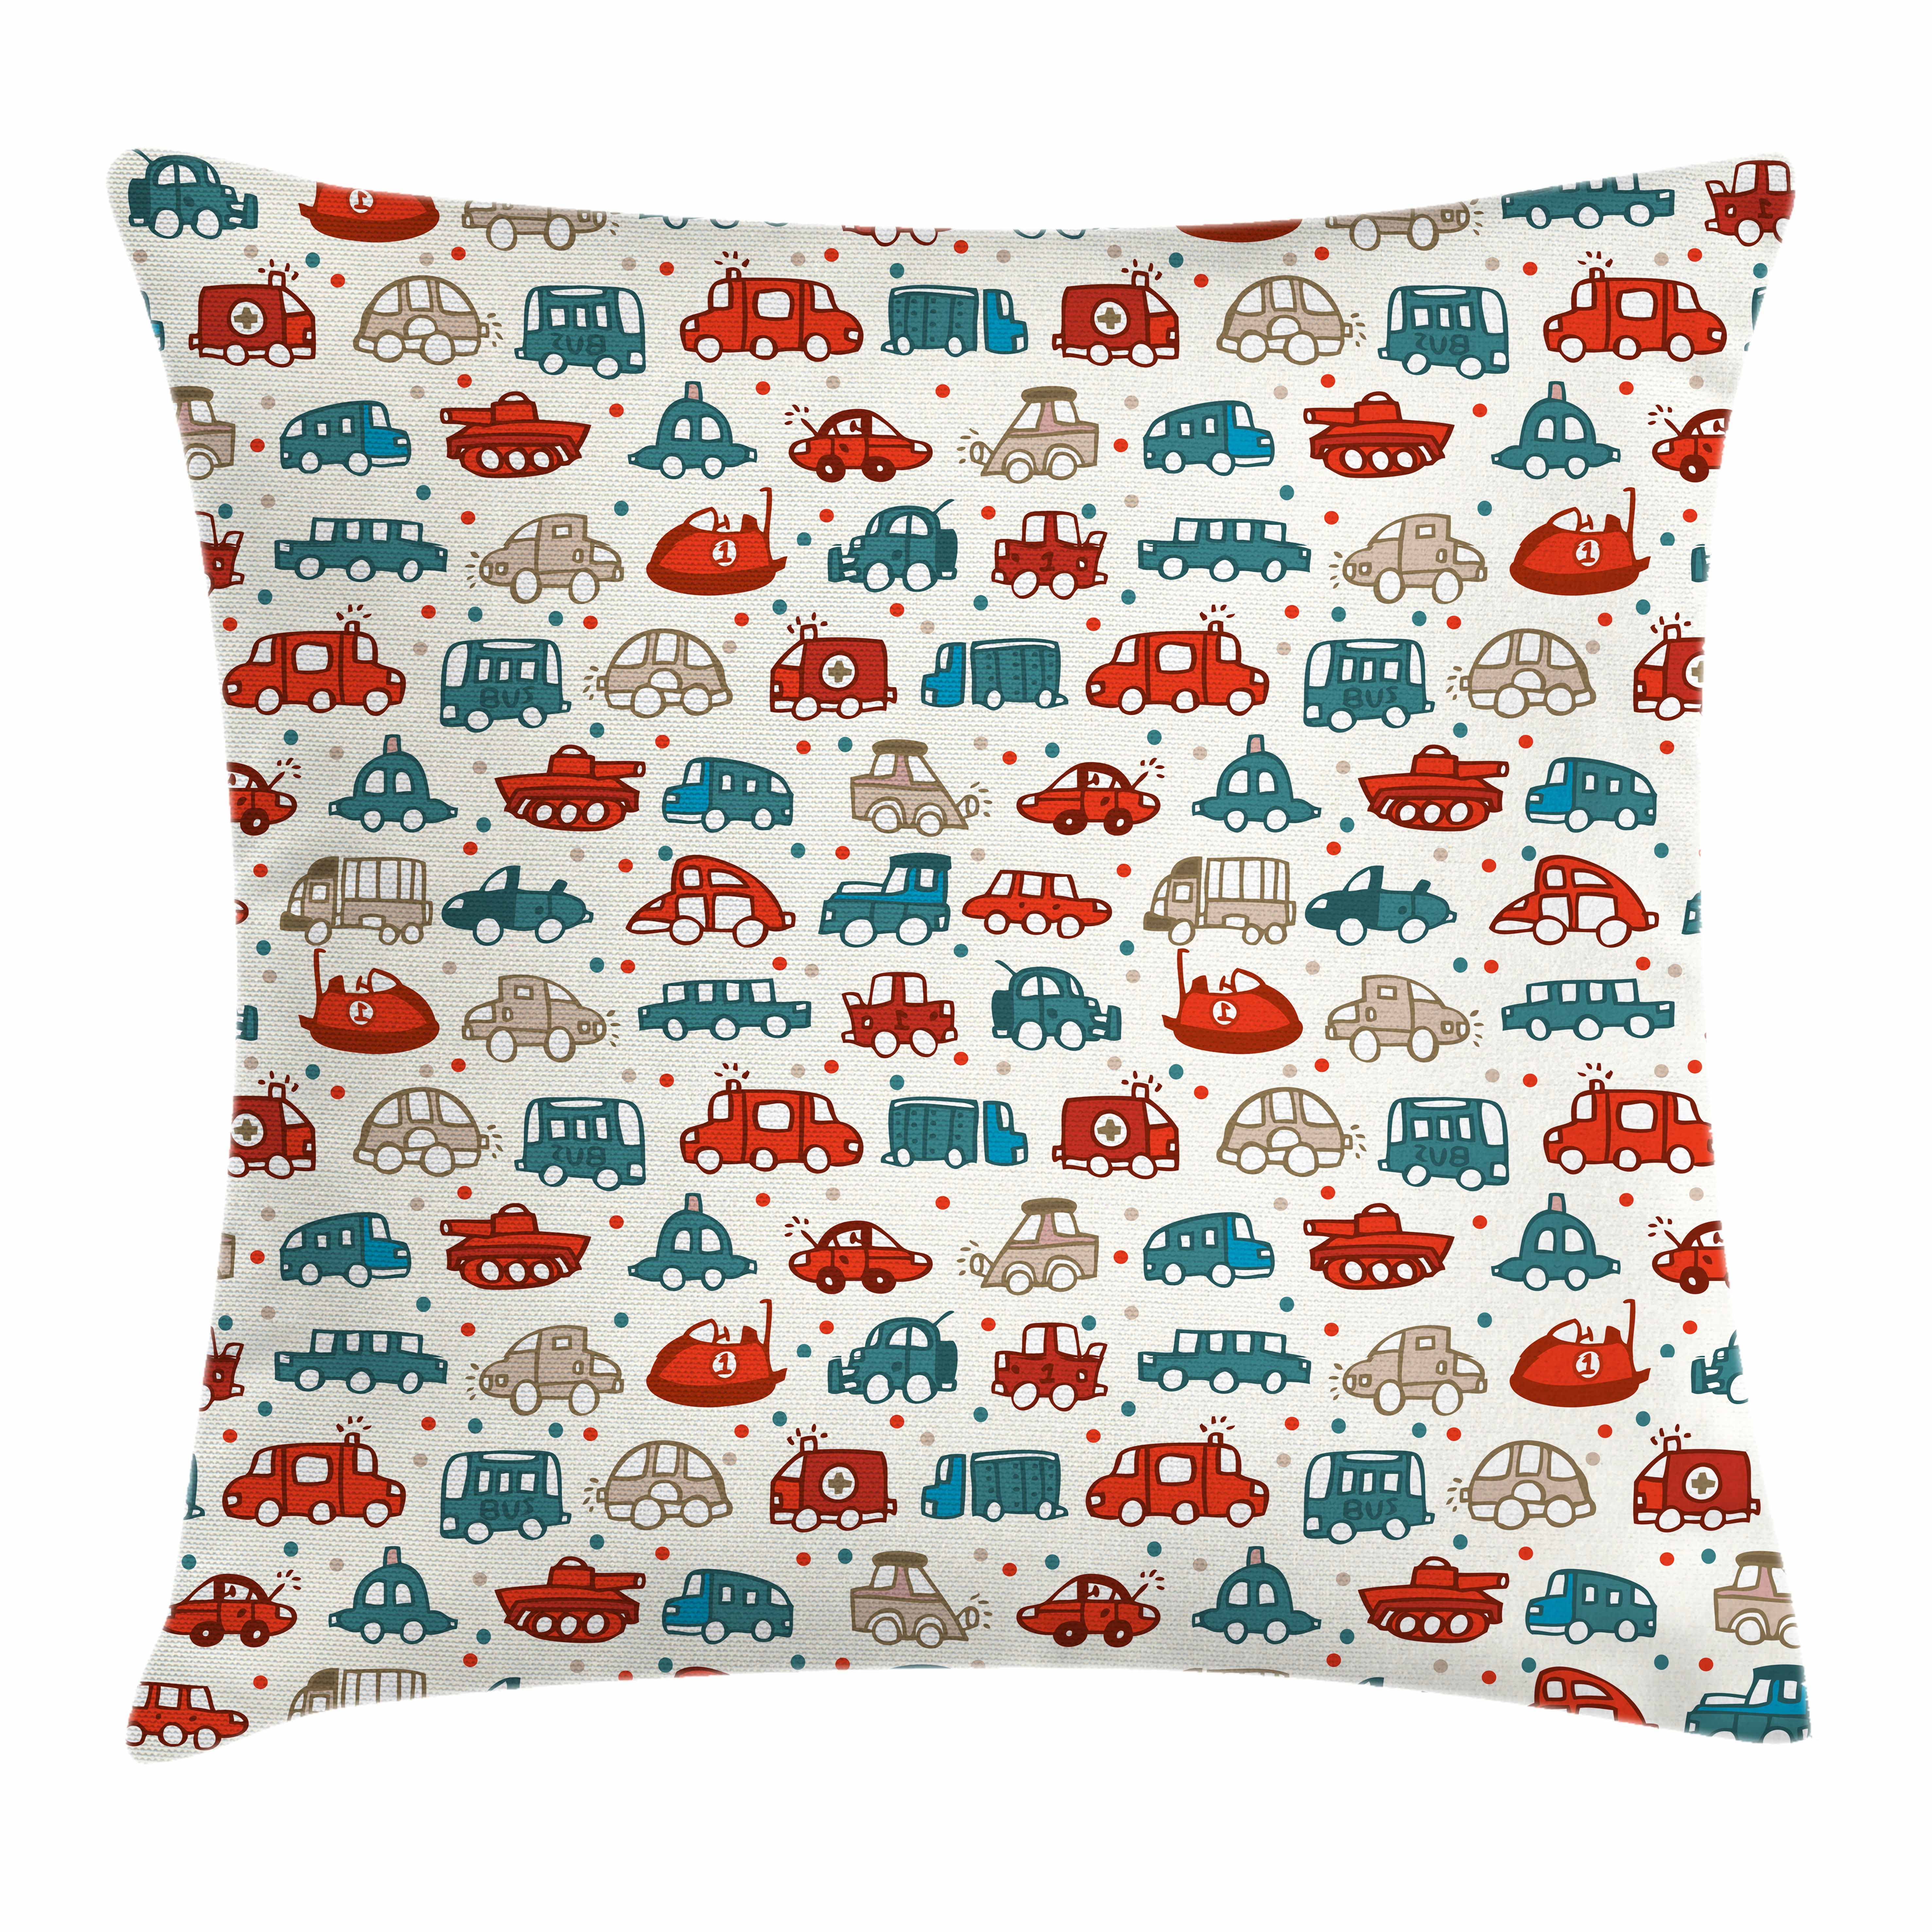 Cars Throw Pillow Cushion Cover, Cheerful Baby Boy Play Things in Kids Doodle Style with Many Different Vehicles, Decorative Square Accent Pillow Case, 16 X 16 Inches, Teal Scarlet Tan, by Ambesonne